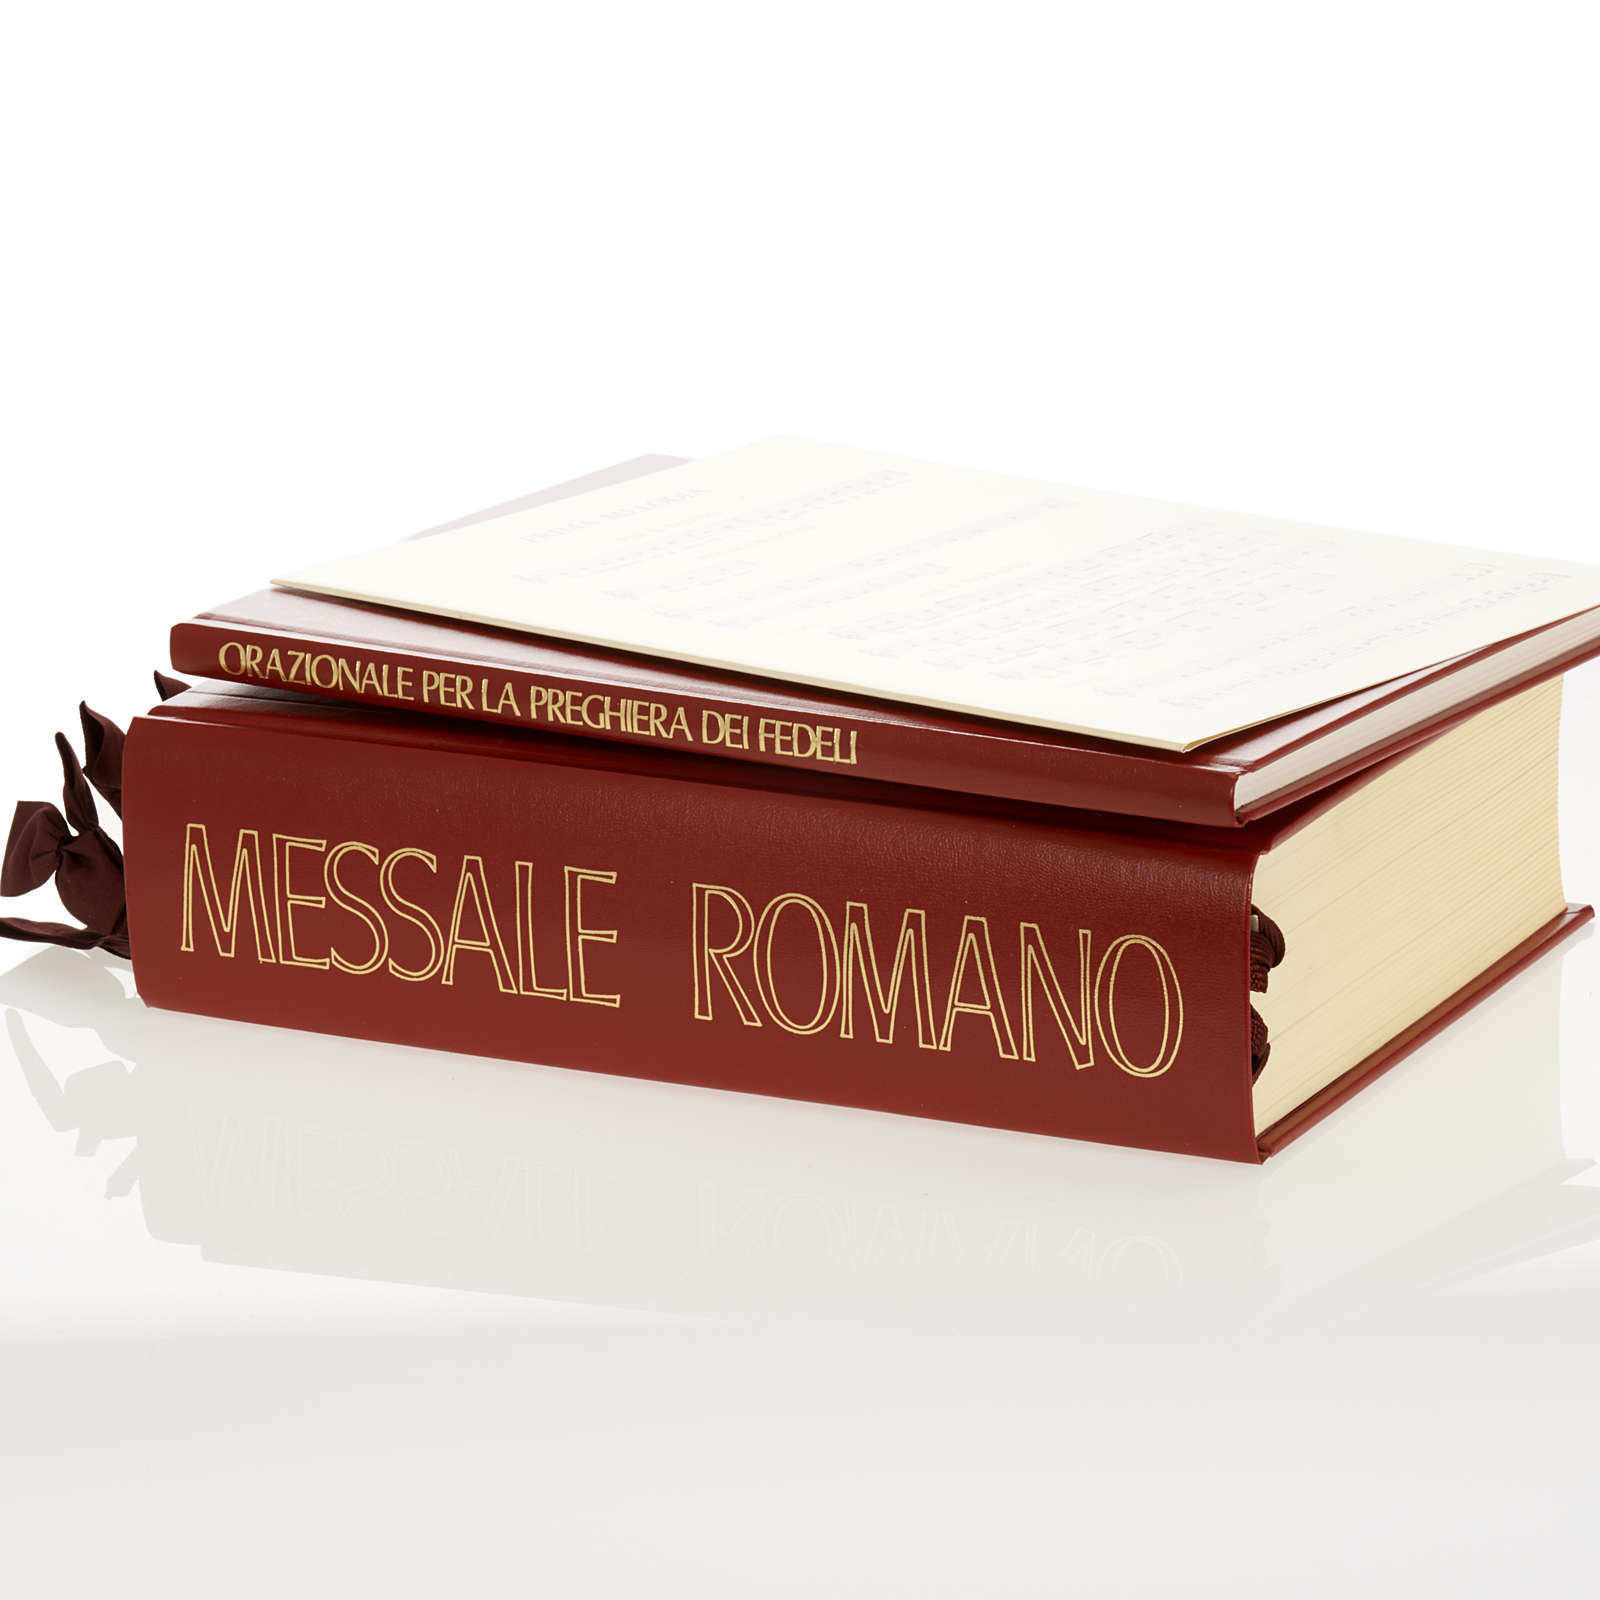 Roman Missal extended edition 4